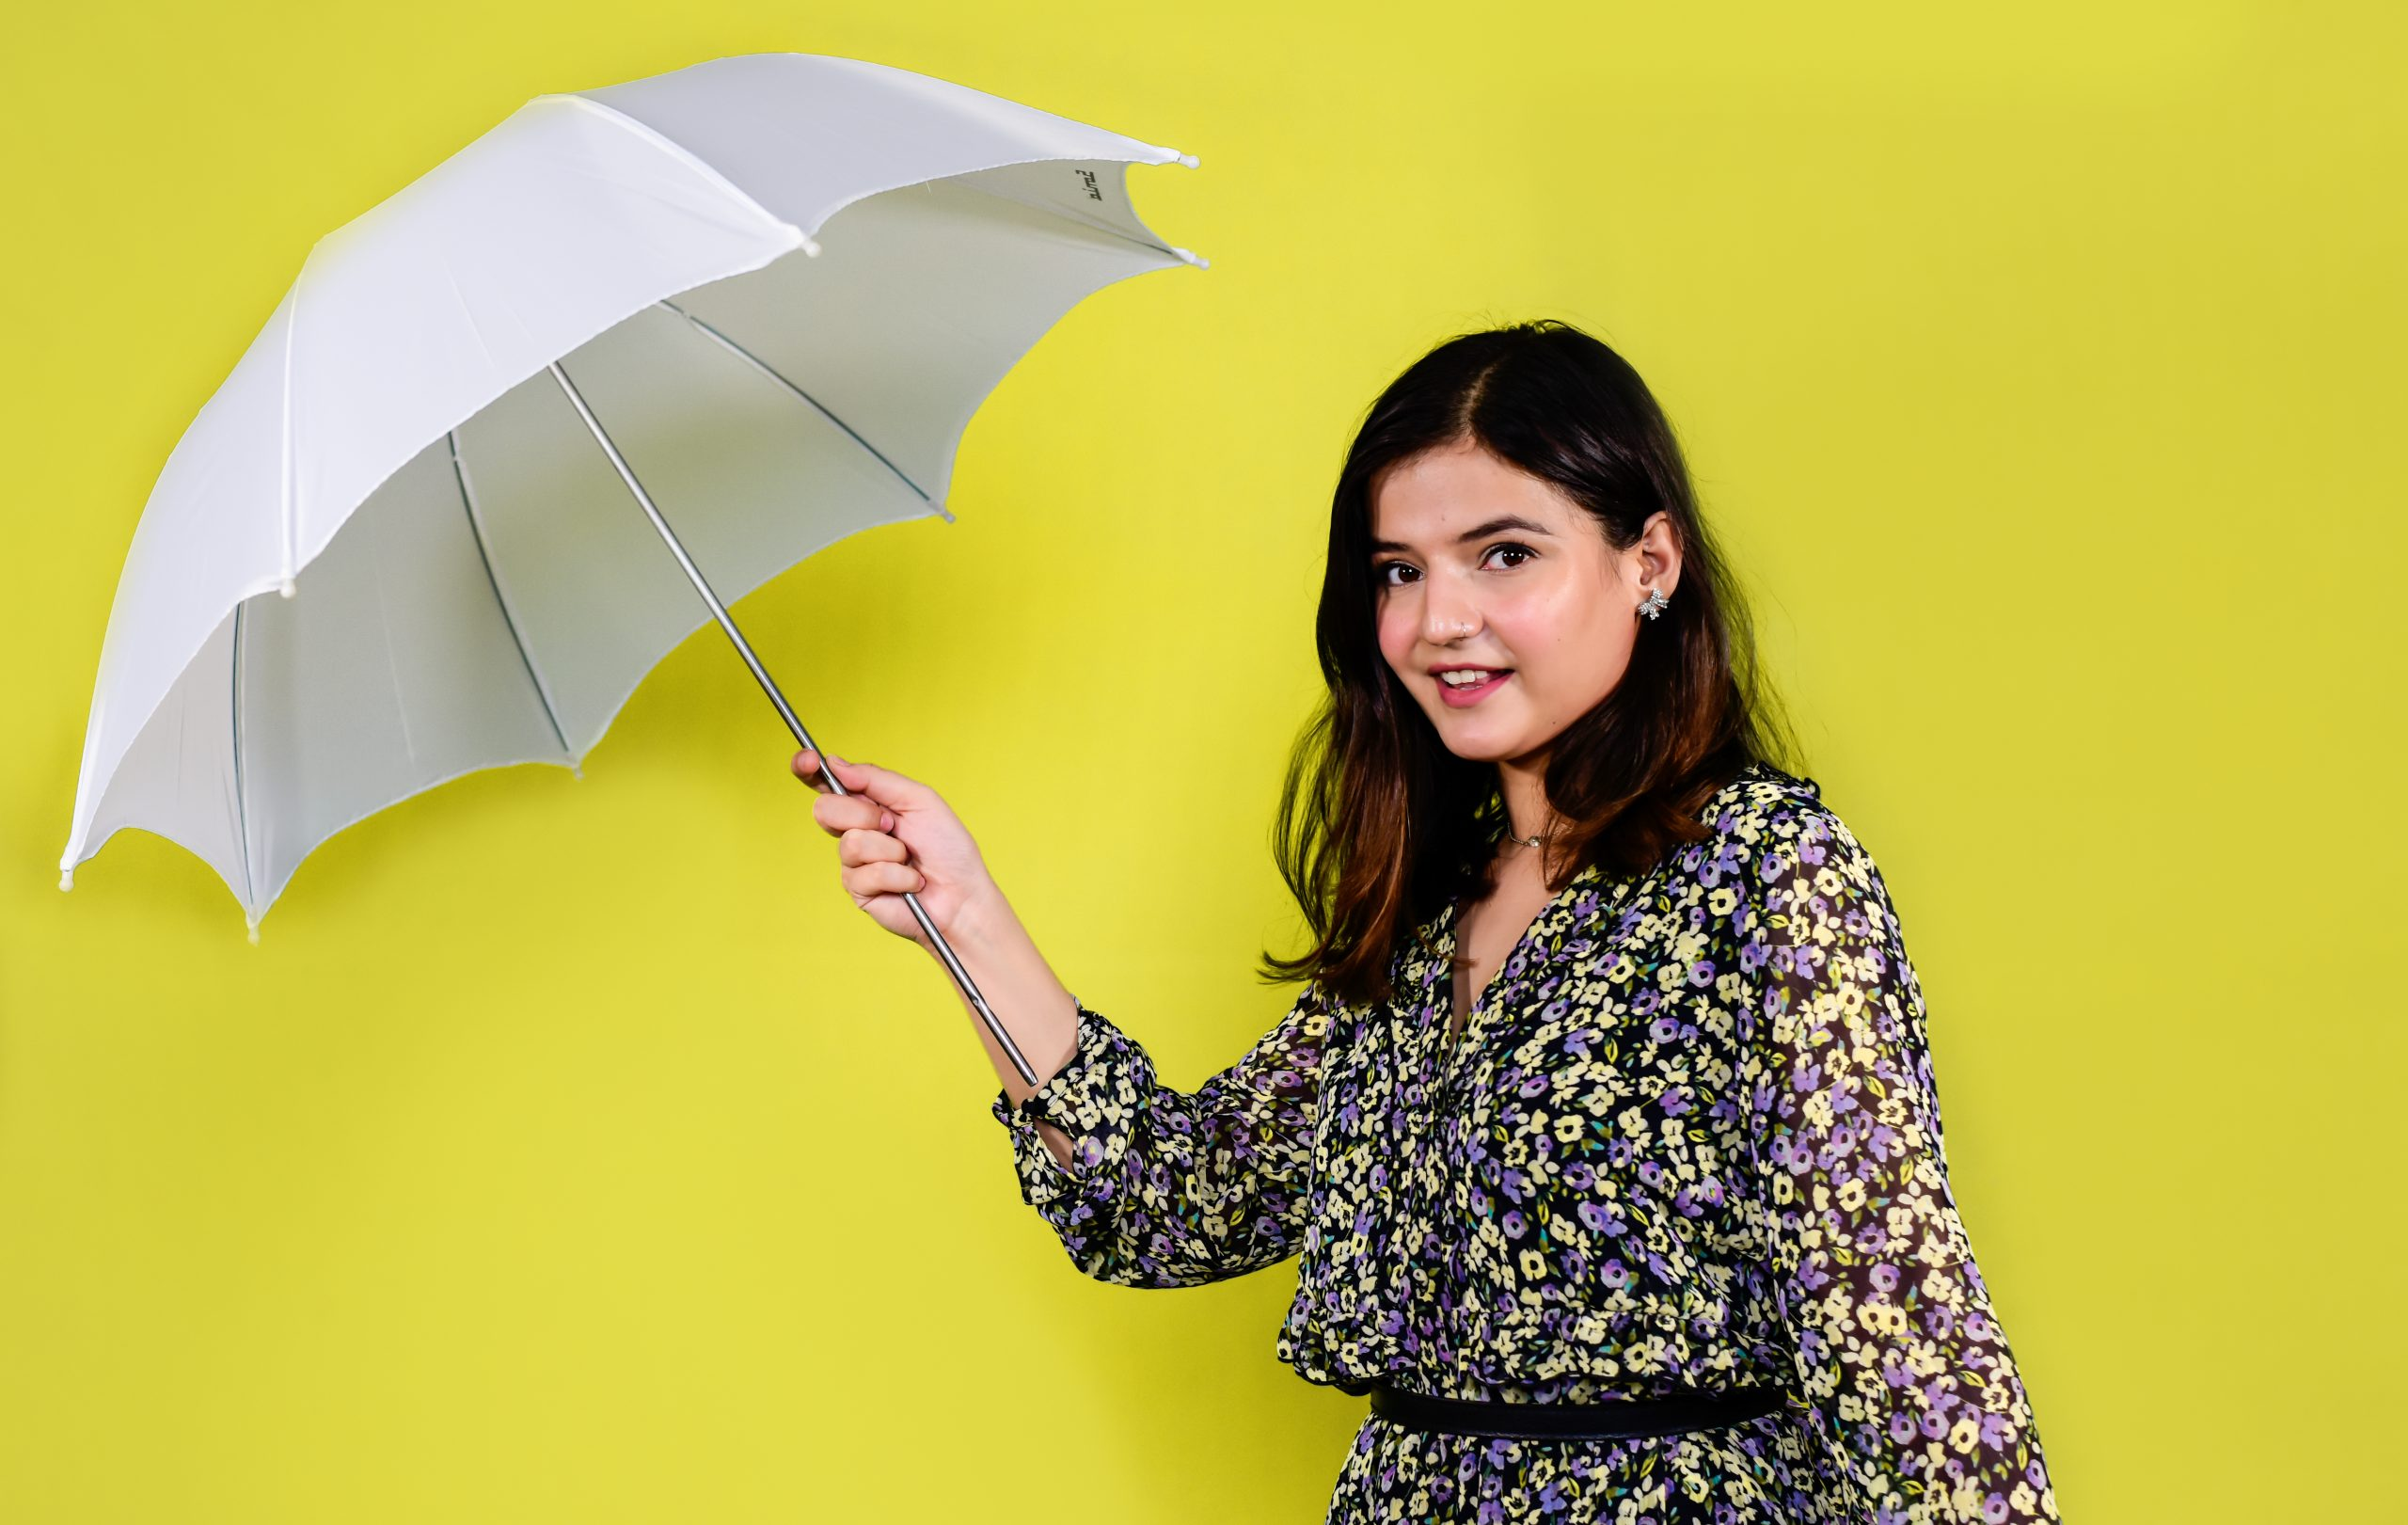 A model holding white umbrella for a photoshoot.